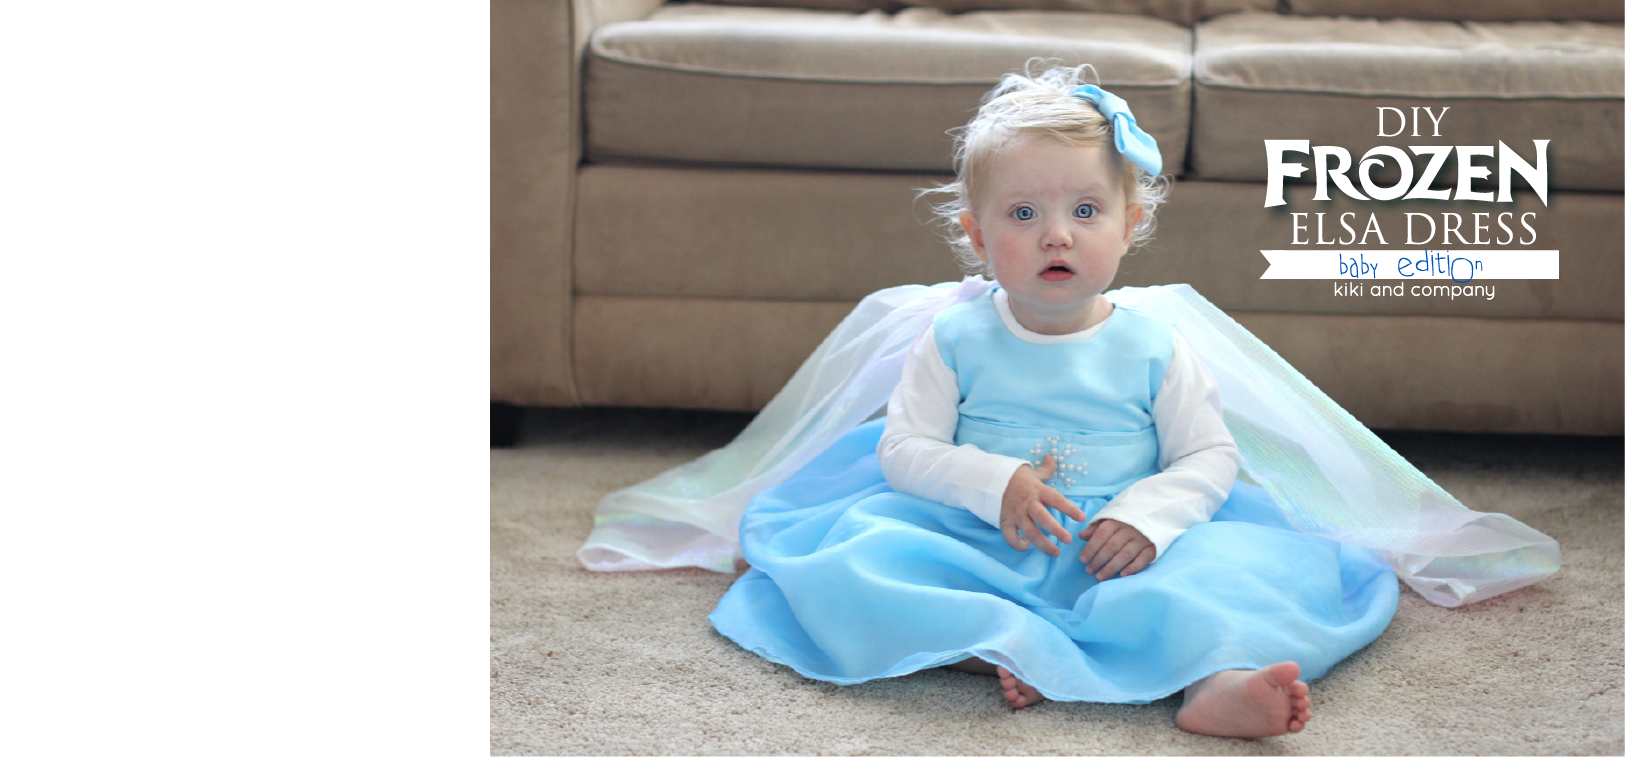 Diy frozen elsa dress baby edition perfect for your littlest princessso adorable